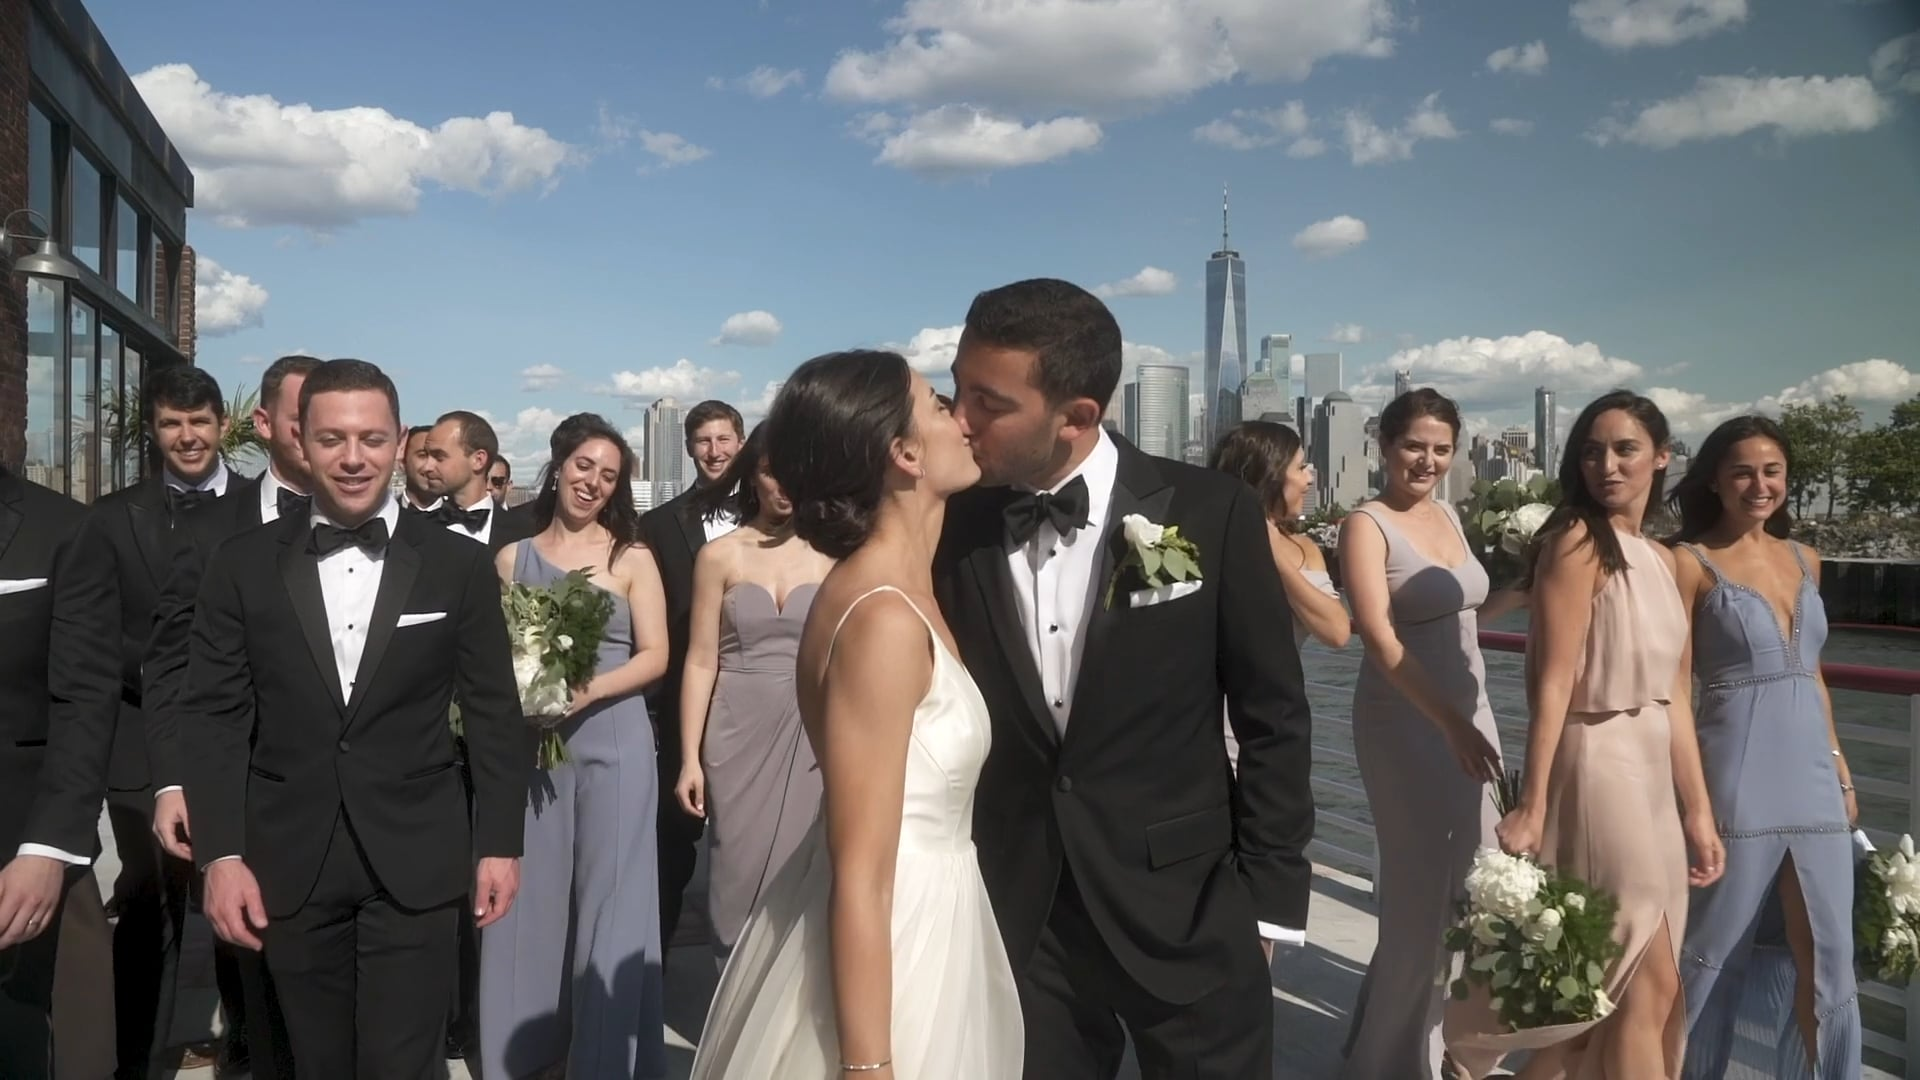 Love, Laughter & Endless Dancing on the Great Hudson River | Amy & Zach